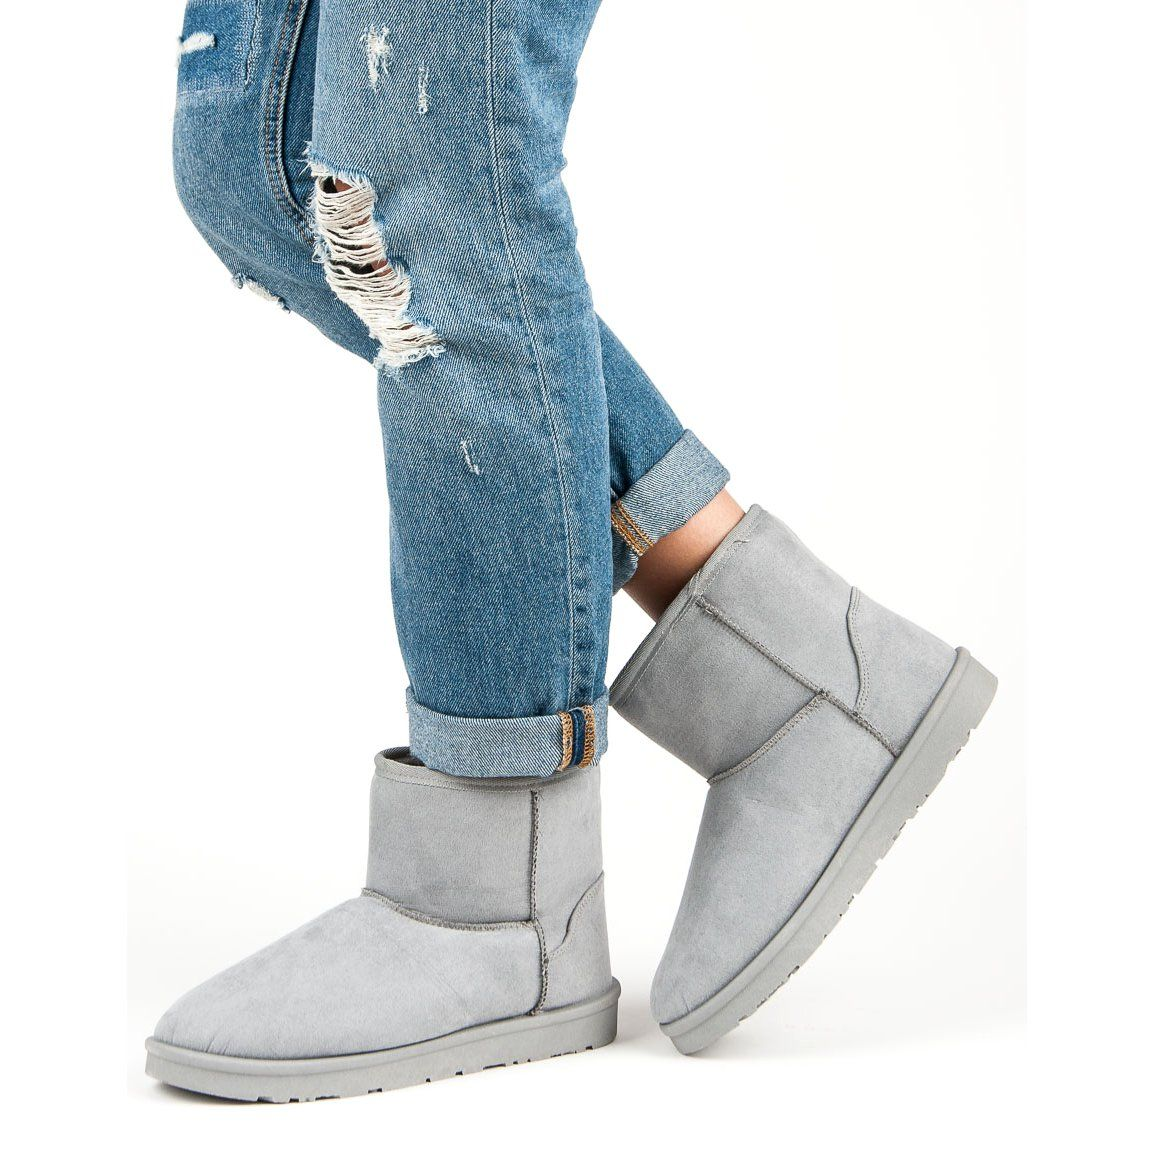 Sniegowce Damskie Vices Vices Szare Zamszowe Mukluki Vices Bearpaw Boots Ugg Boots Boots